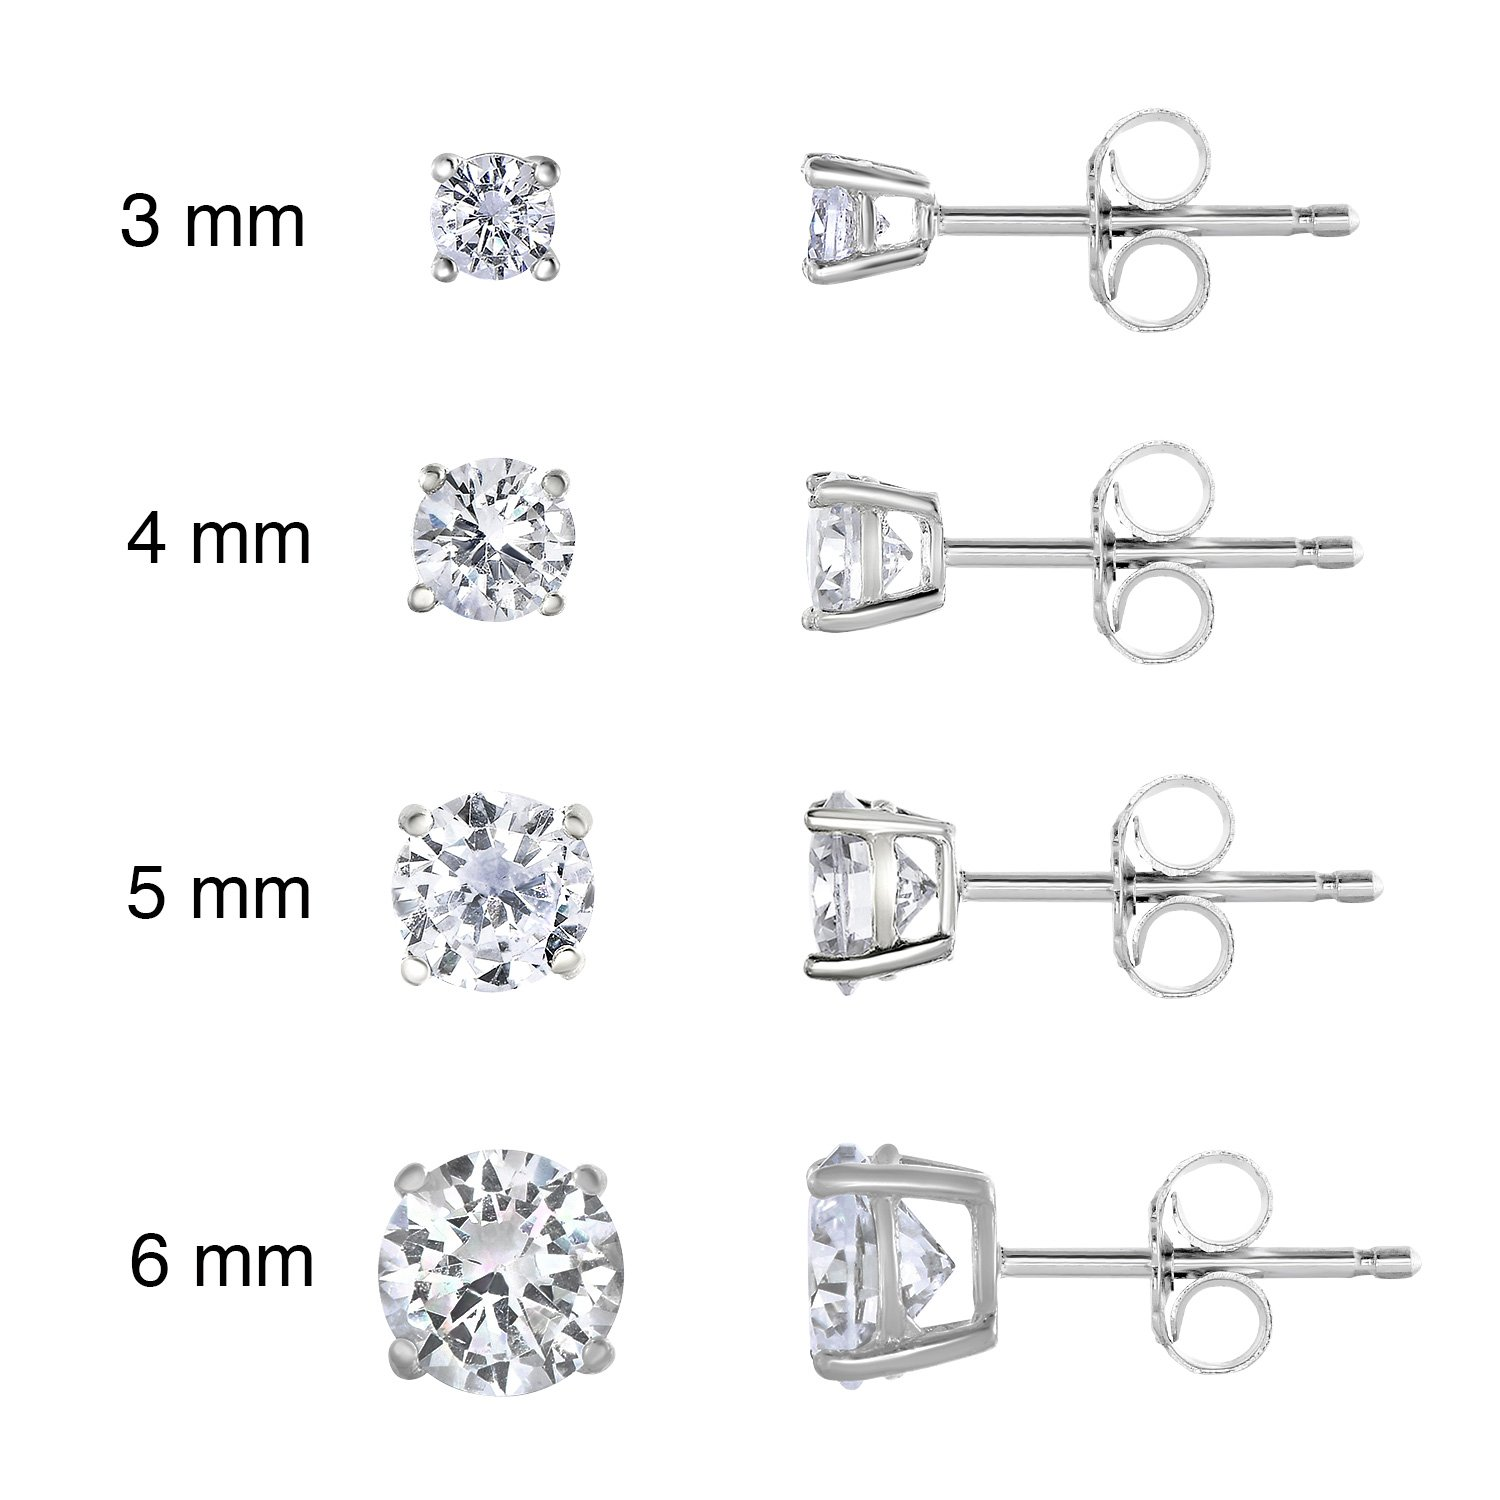 Rhodium Plated Sterling Silver Cubic Zirconia Classic Basket Prong Set Stud Earrings Set, (3-6mm)